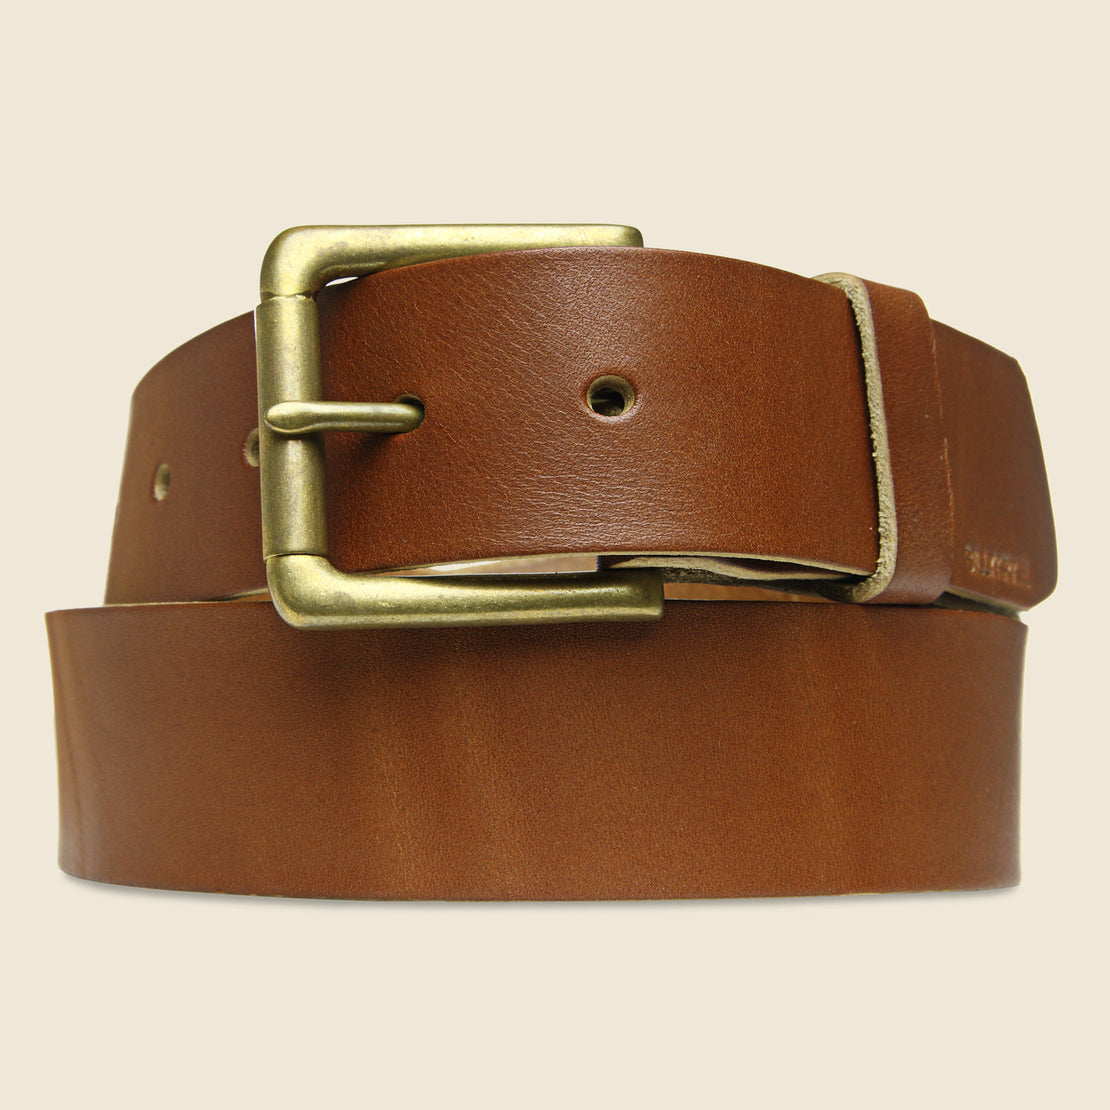 BILLYKIRK Roller Bar Belt - Tan